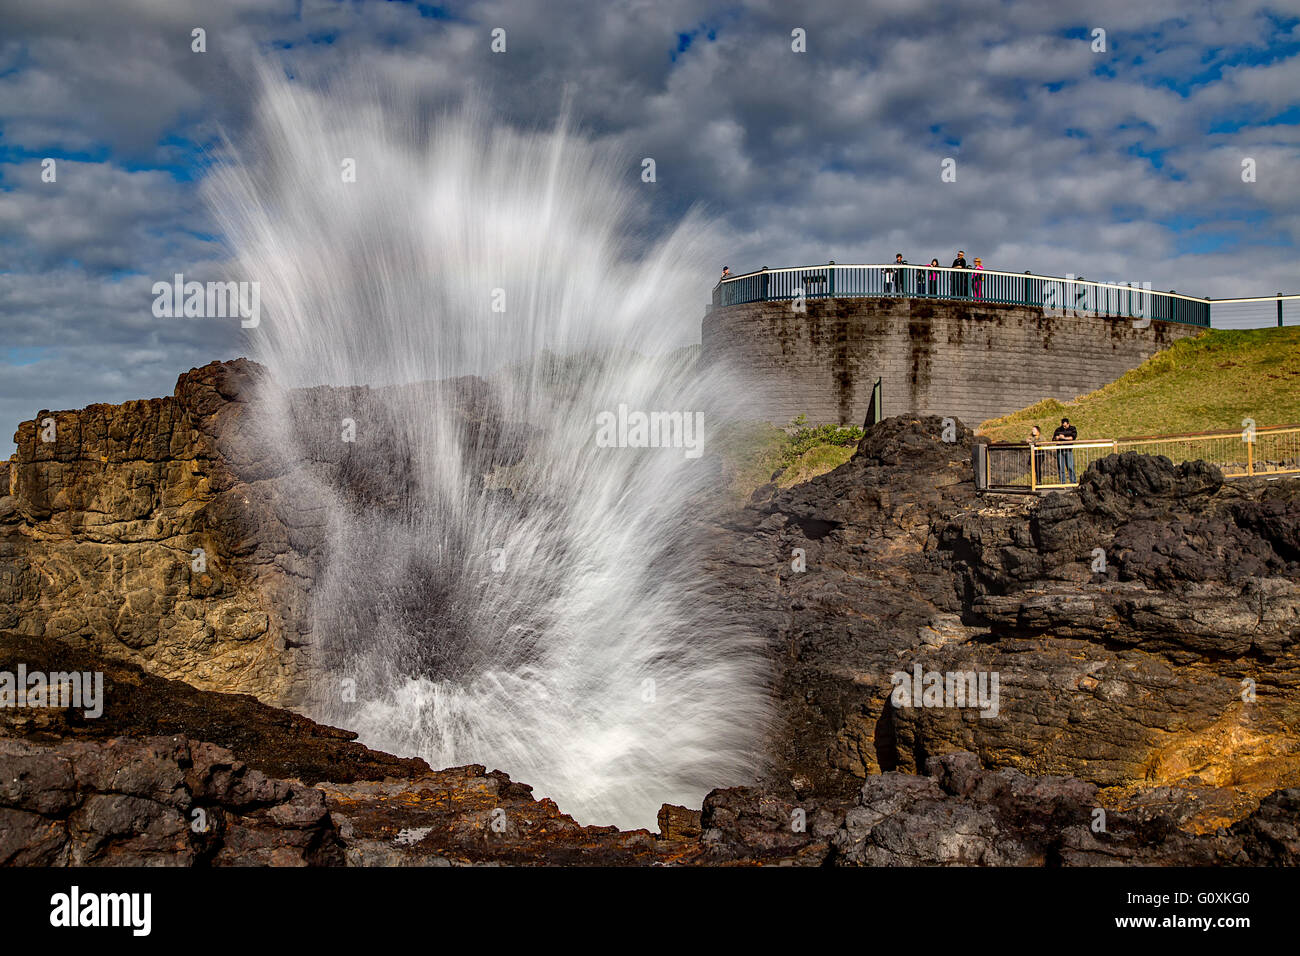 Tourists watch as the famous Kiama Blowhole erupts. - Stock Image